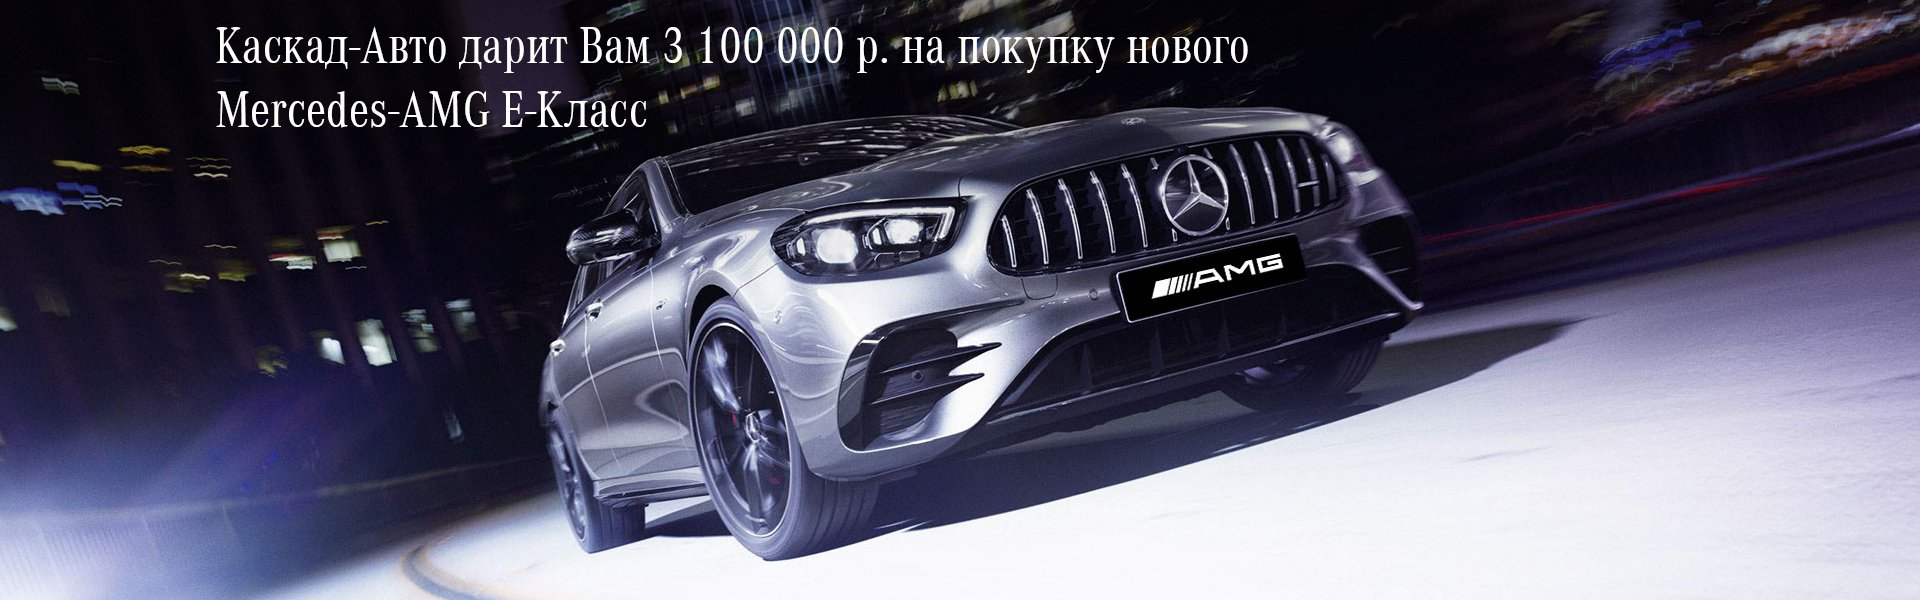 Mercedes-AMG E-Класс седан